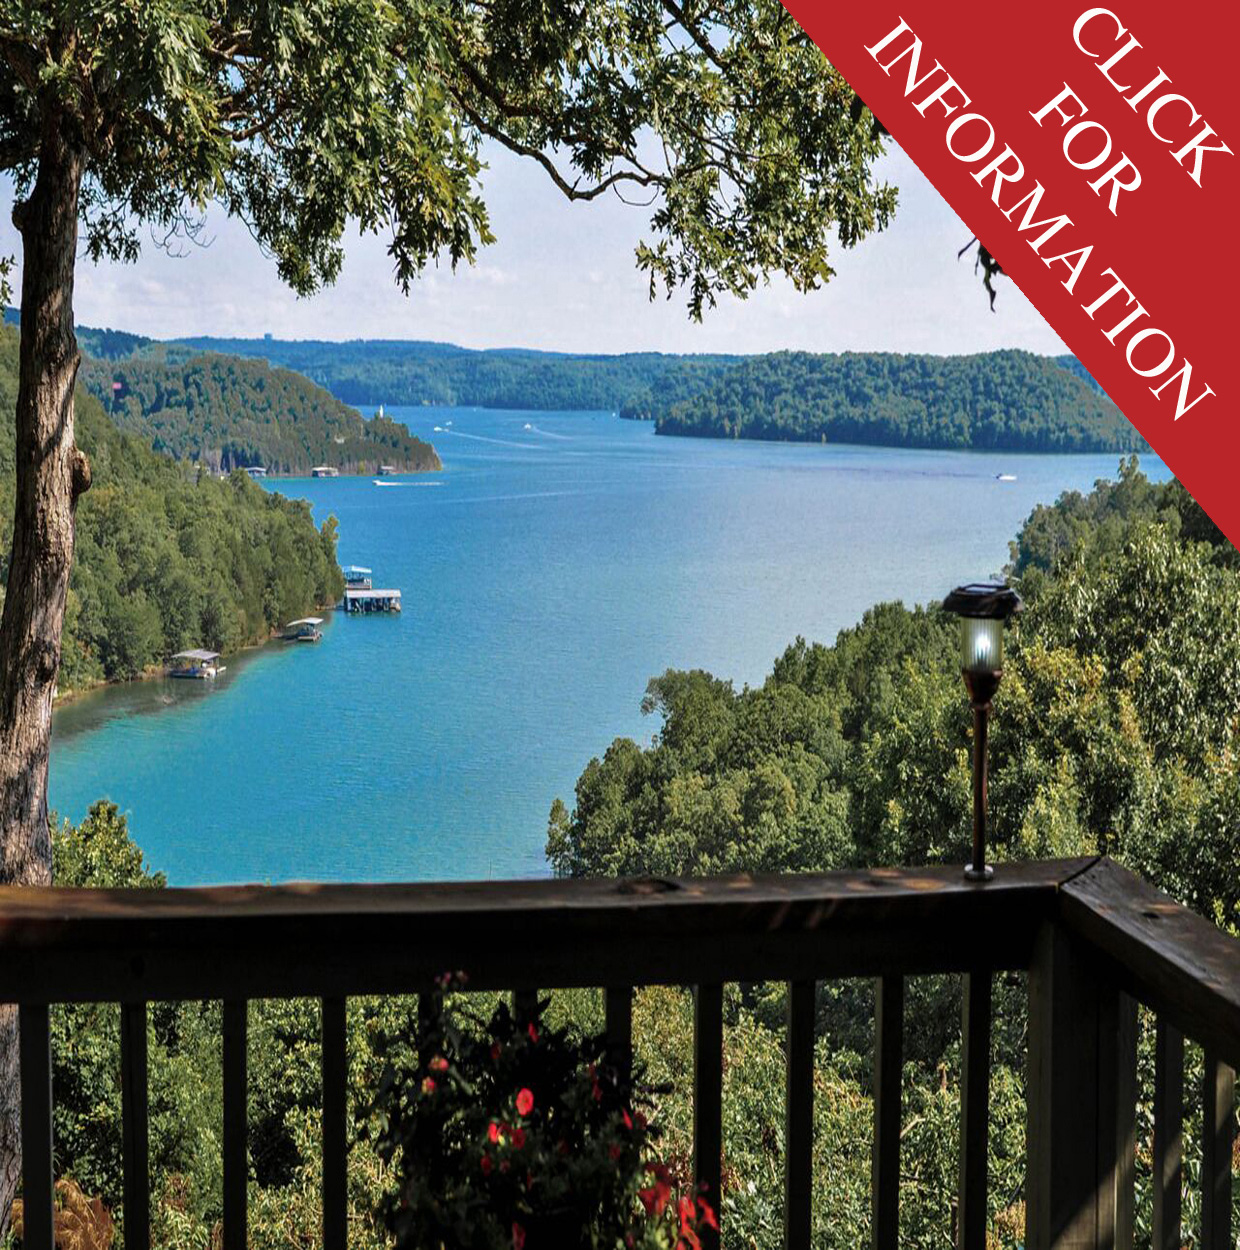 Beaver Lake Cottages, Beaver Lake, Arkansas, Eureka Springs, Relax, Unwind, Getaway,